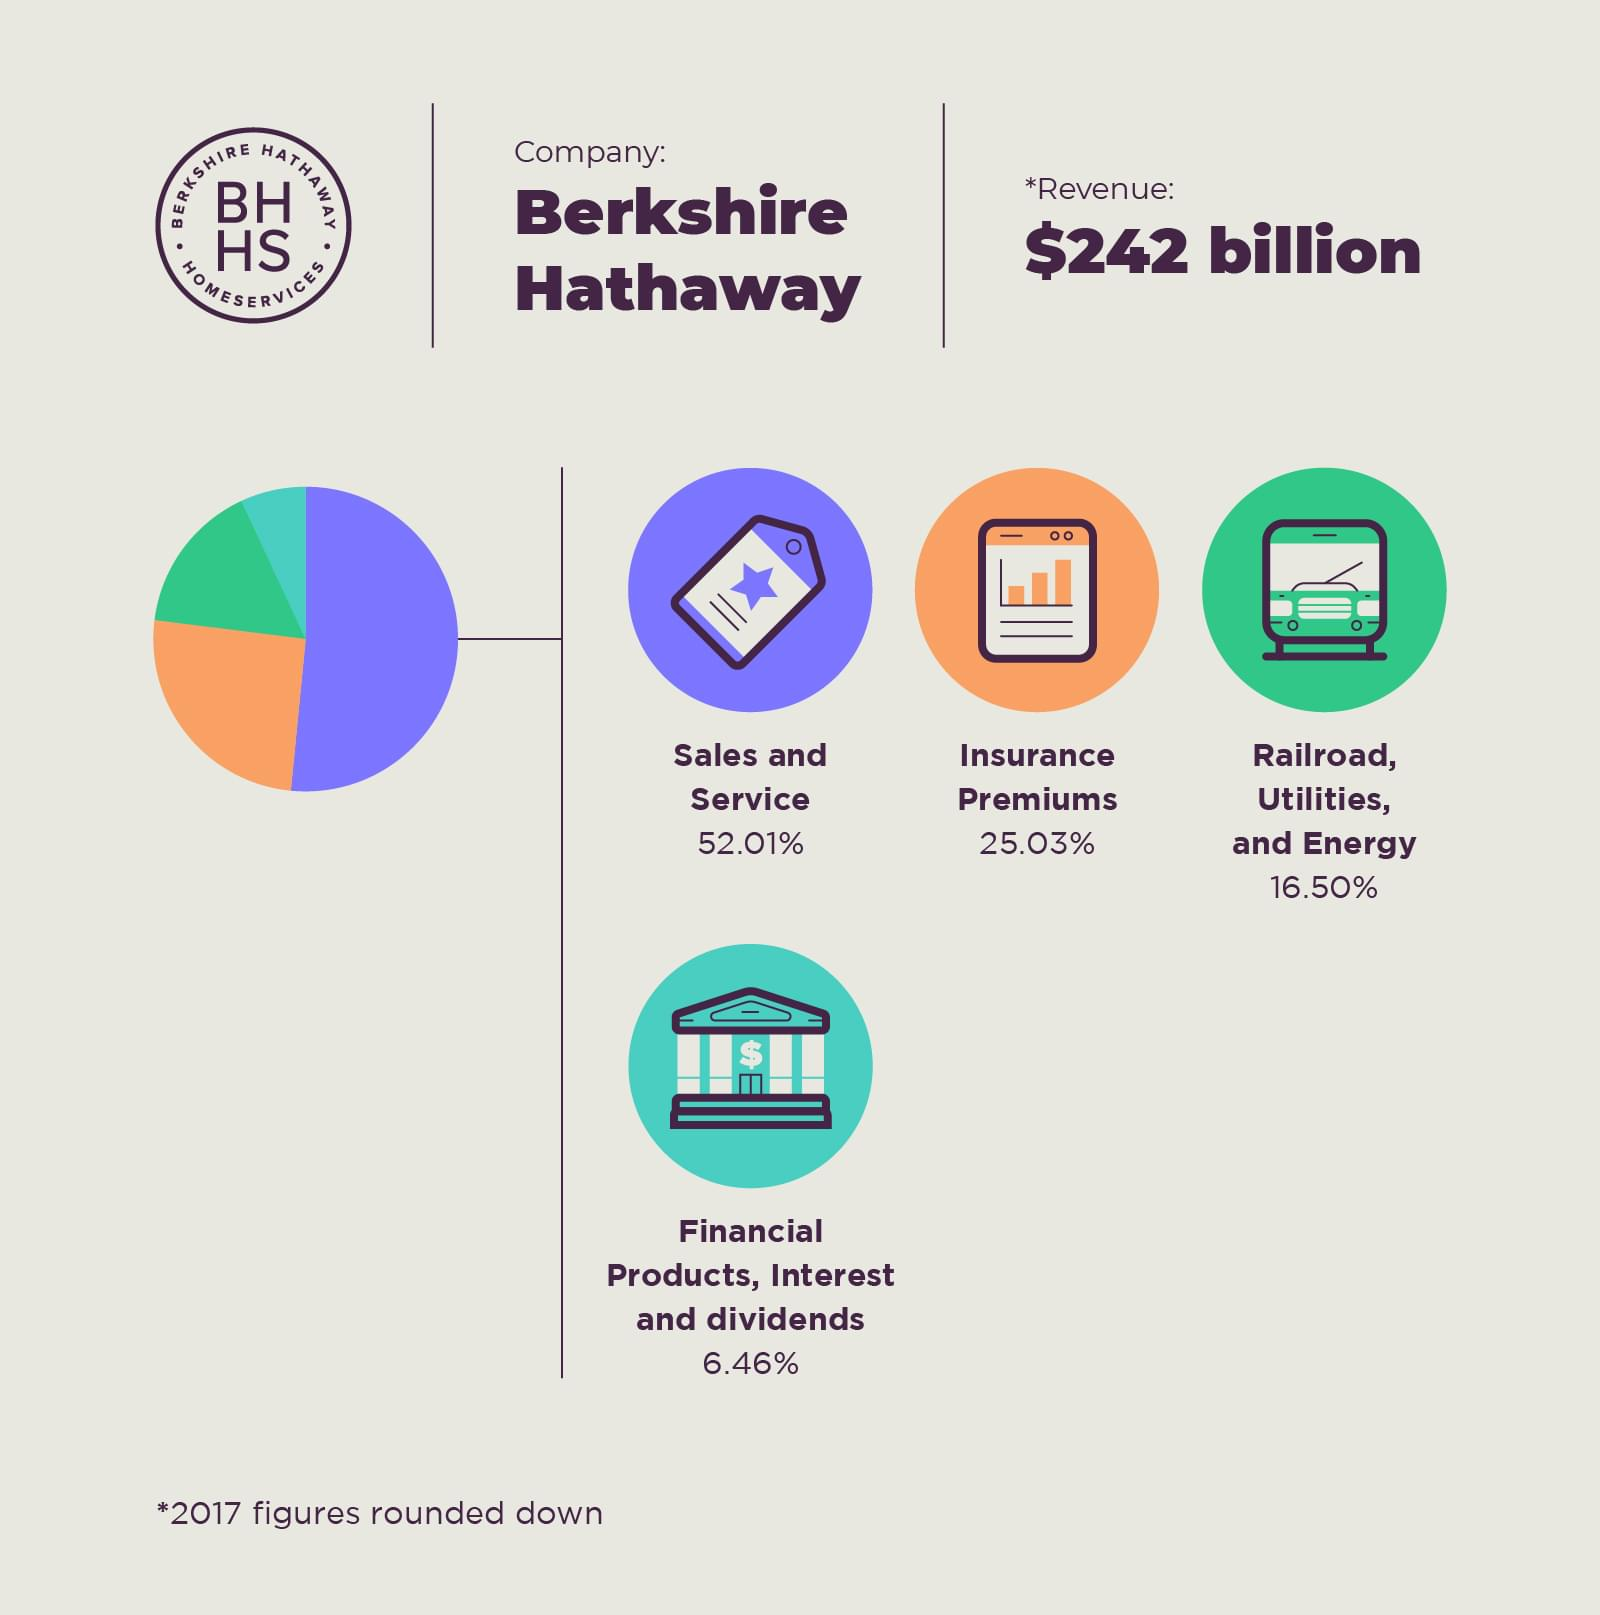 Revenue streams of Warren Buffett's Berkshire Hathaway